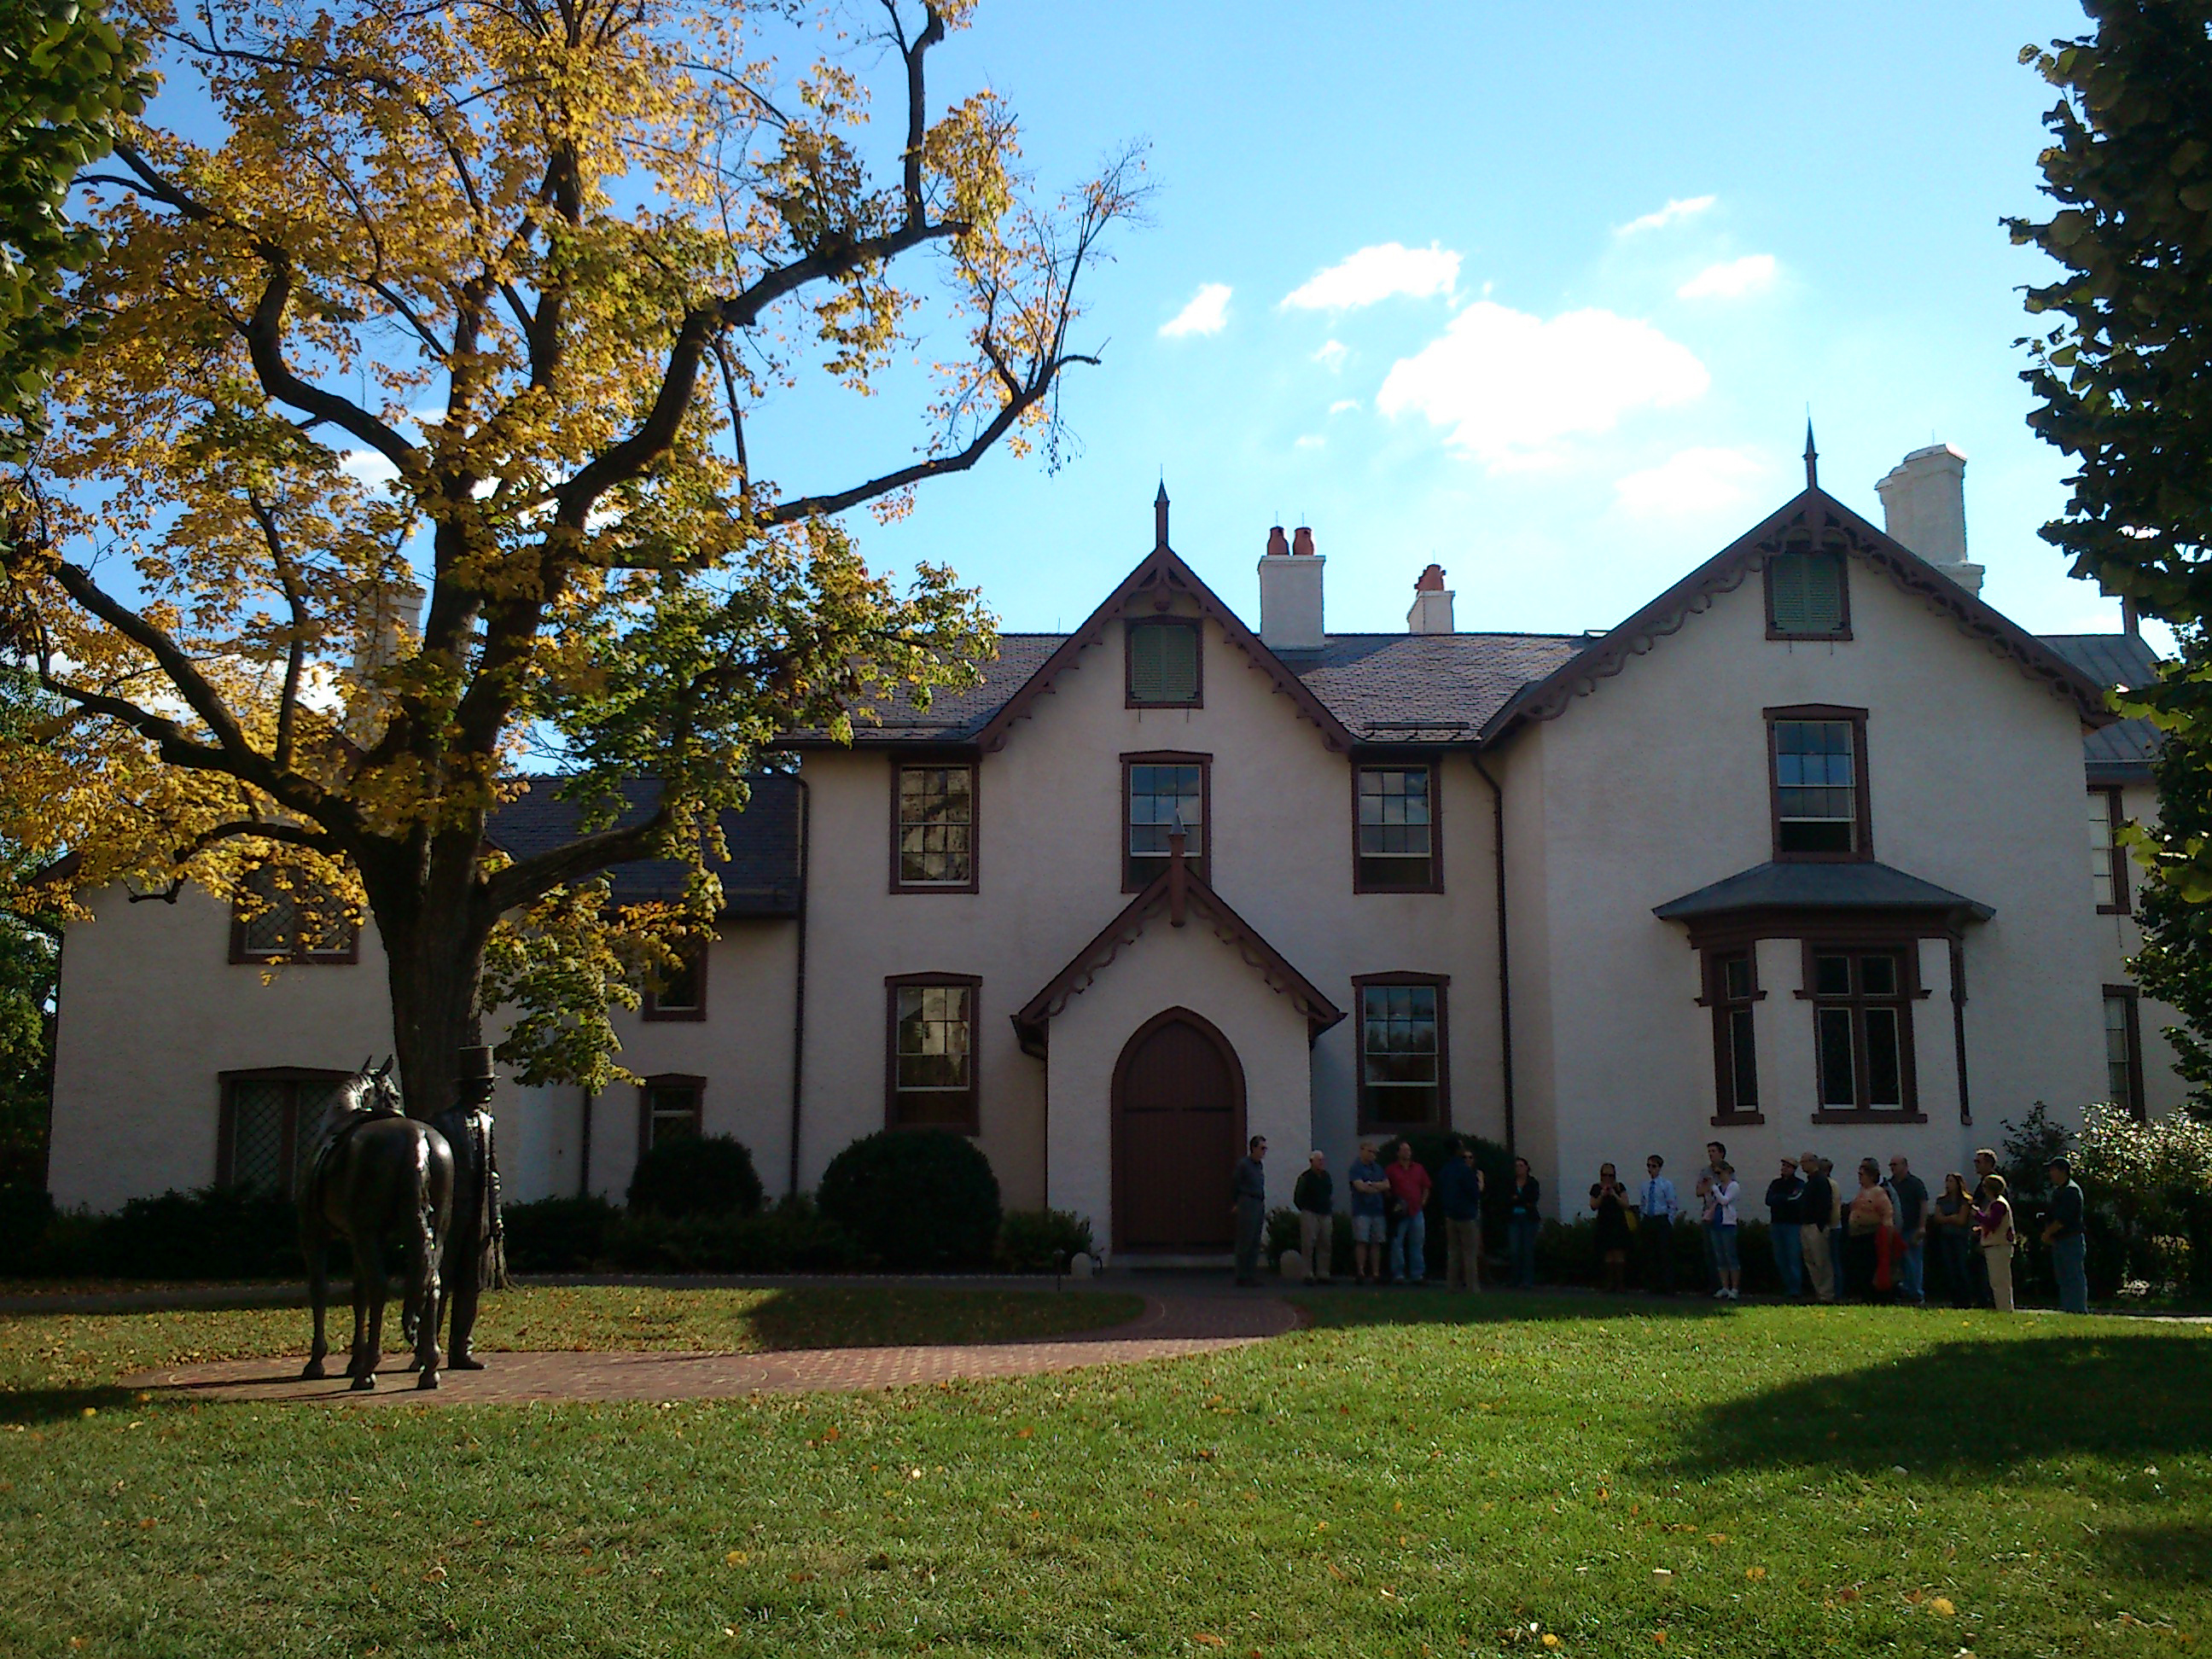 President Lincoln's Cottage in Washington, DC, is just one historic site that has been revising its programs to make contemporary connections to history more clear.